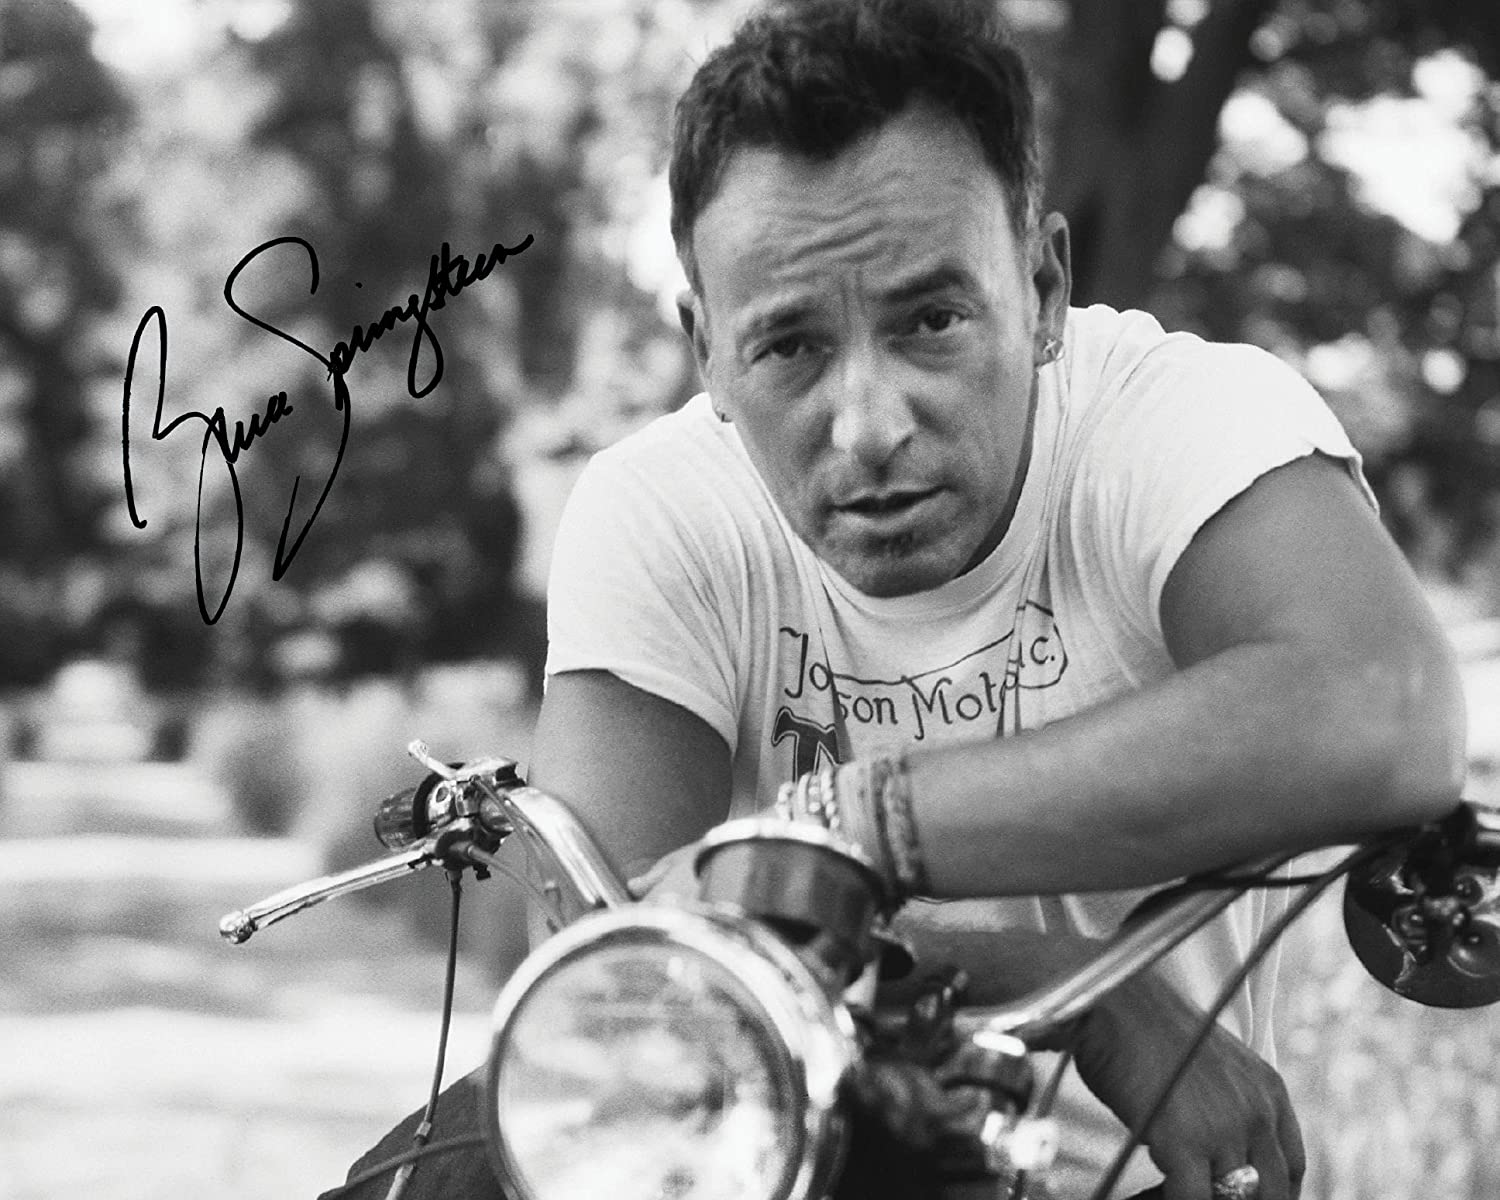 Present Gift Collectible Lab Quality Bruce Springsteen #2  Signed Lab Photo Reprint Photo Display 10x8 Size to Fit 10x8 Inch Frames